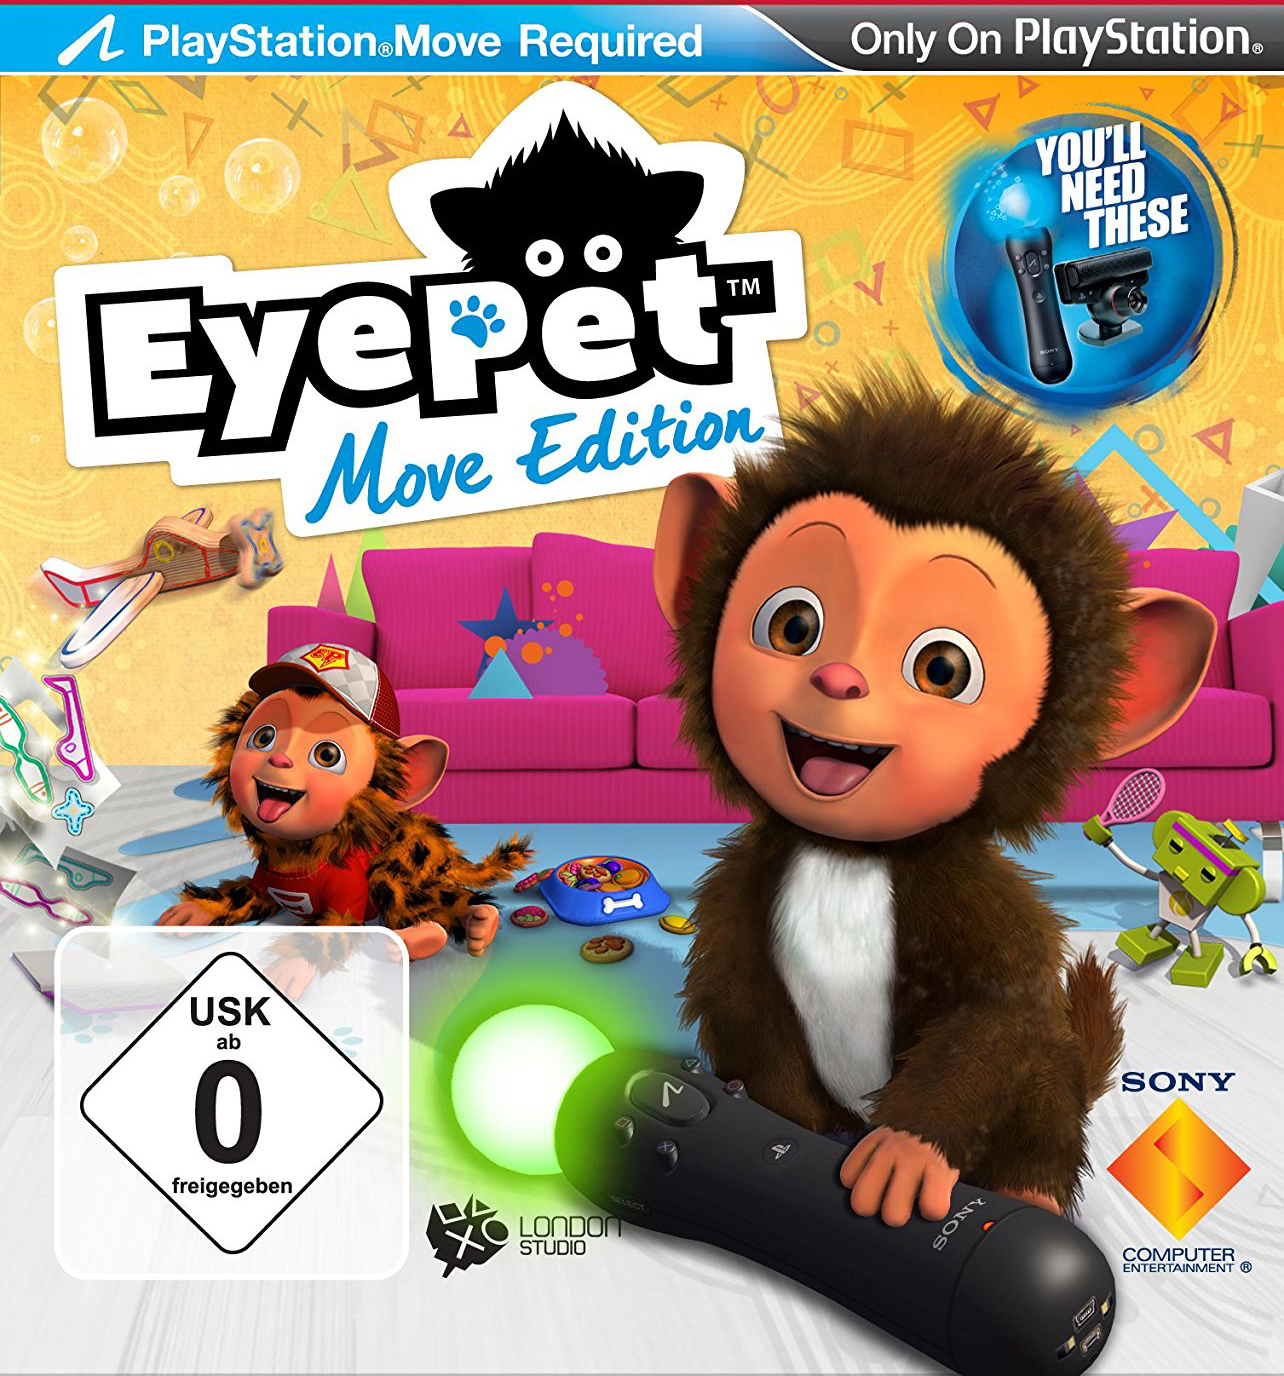 PS3 - Eyepet move